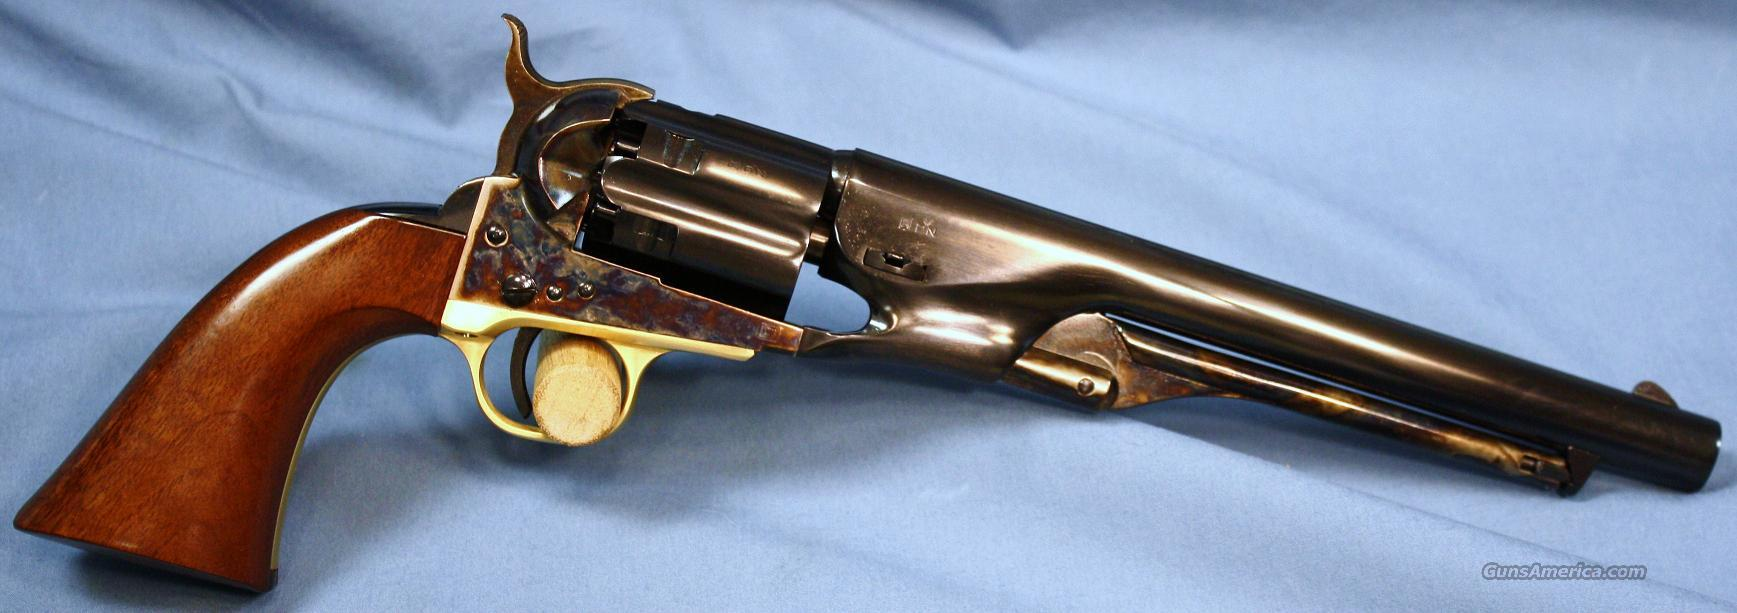 Uberti 1860 Army Single Action Percussion Revolver with Fluted Cylinder 44 Caliber  Guns > Pistols > Uberti Pistols > Percussion